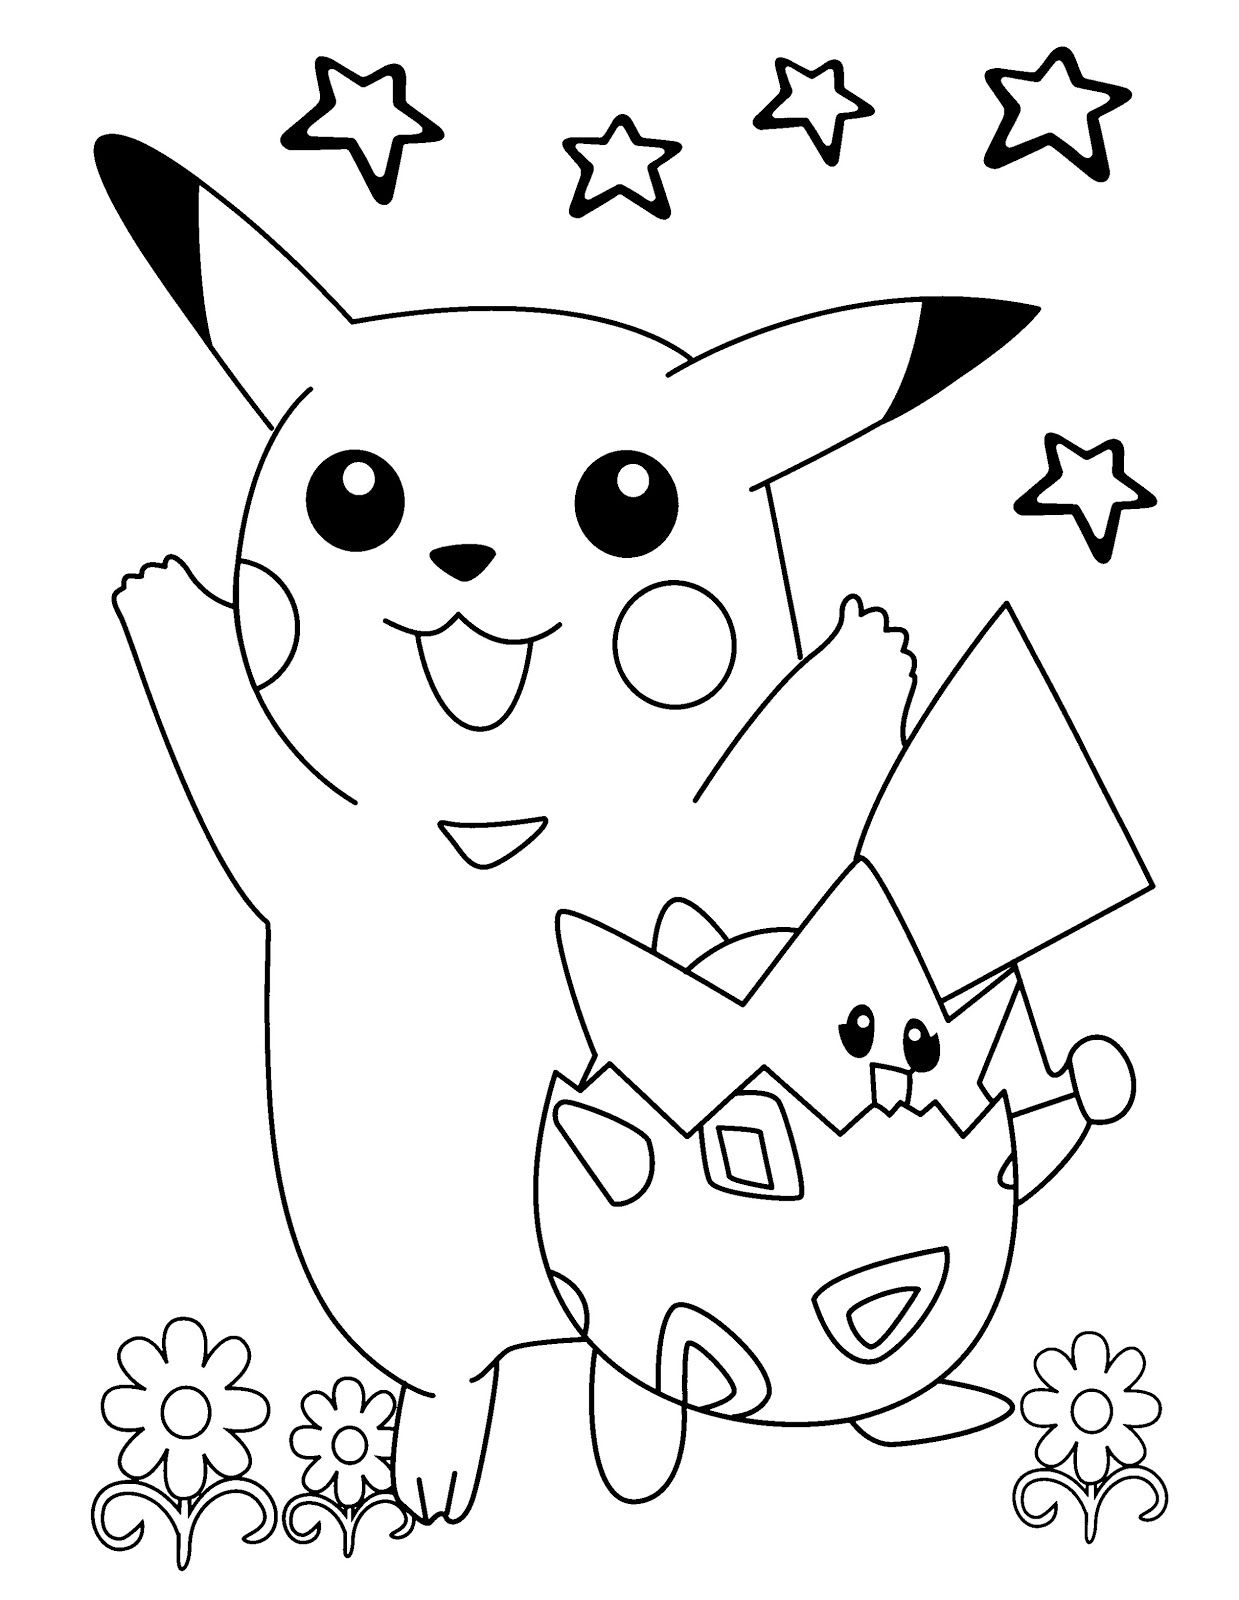 Printable Pokemon Pikachu And Togepi Coloring Pages In 2020 Pokemon Coloring Pages Pikachu Coloring Page Minion Coloring Pages